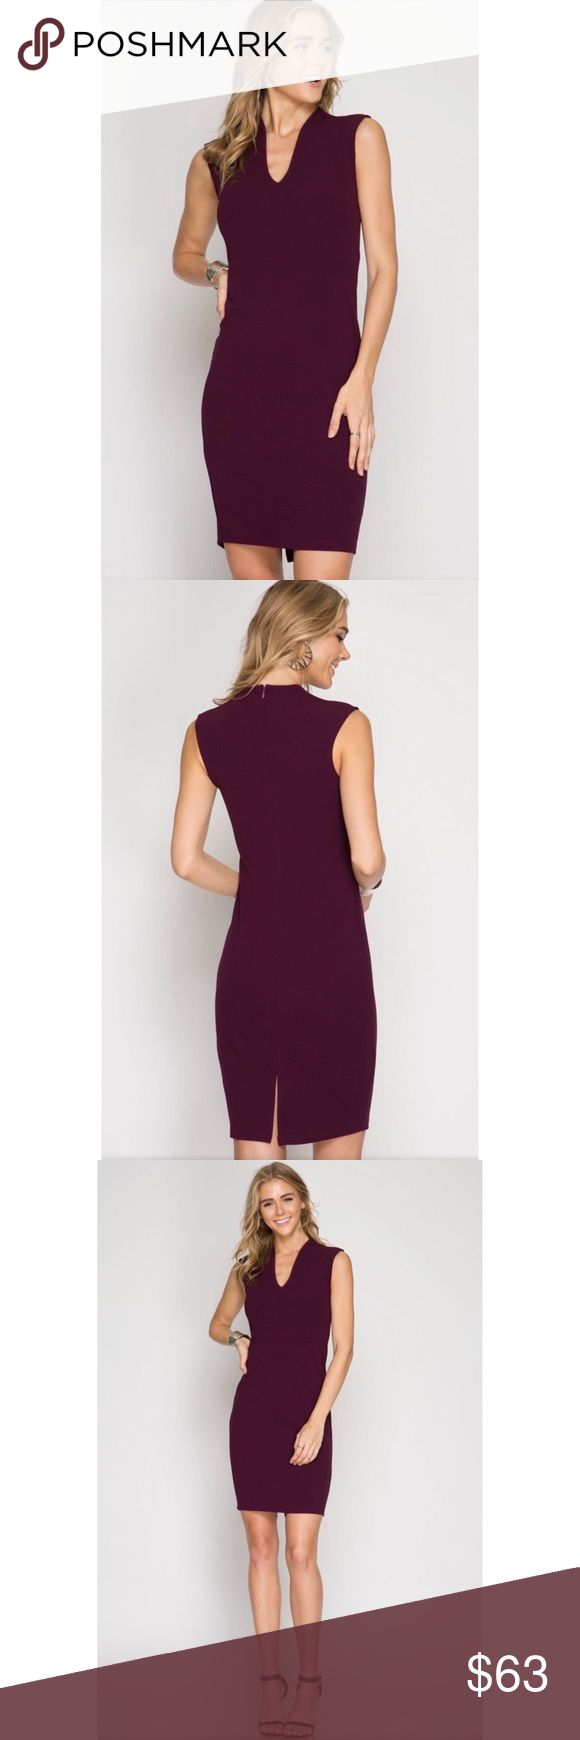 Midi Bodycon Dress Heavy knit midi bodycon dress with a beautiful neckline. Back zipper. Has a little bit of stretch.   From keybops.shop  Model is 5'11.  Color: Plum.  60% cotton, 40% rayon. She and Sky Dresses Midi